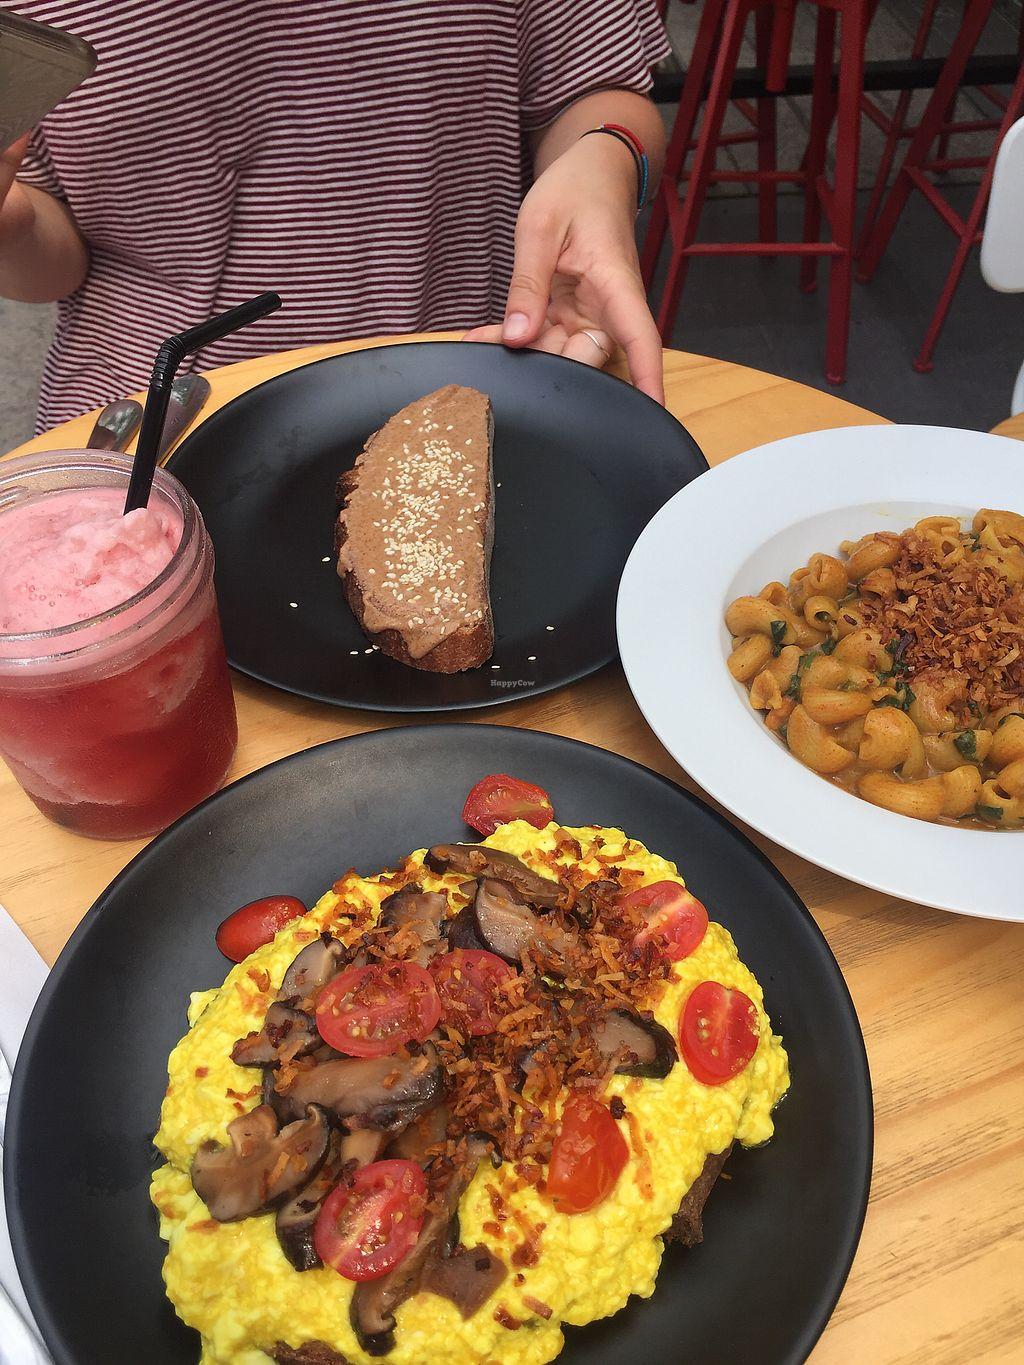 "Photo of Soul ALife  by <a href=""/members/profile/meislnicoline"">meislnicoline</a> <br/>Nur butter toast, mac&cheese, scrambled egg <br/> April 12, 2018  - <a href='/contact/abuse/image/106922/384270'>Report</a>"